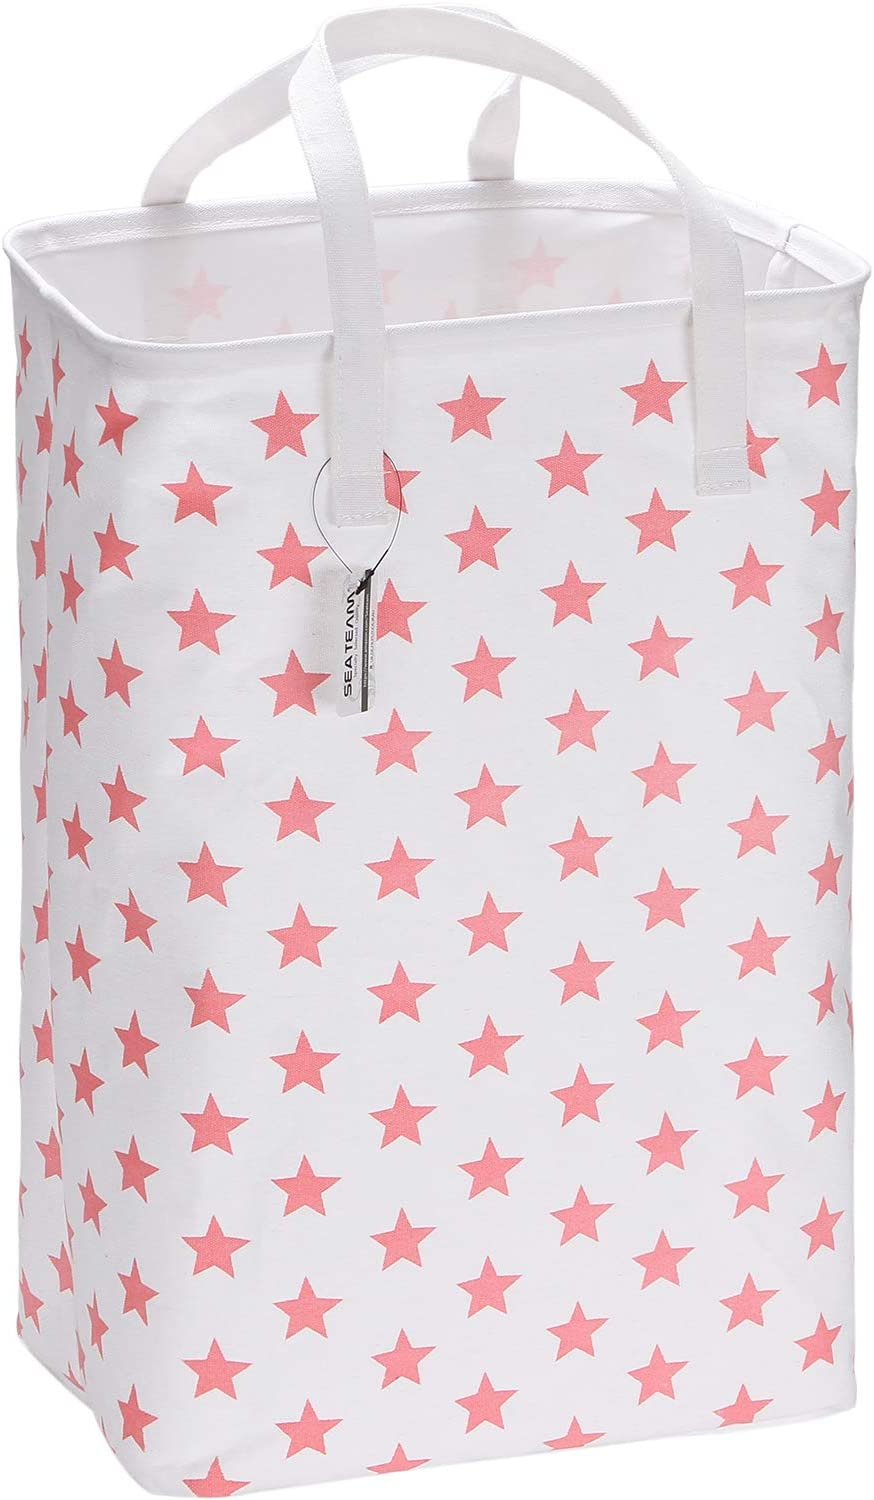 "Sea Team 23.6"" Large Size Canvas Fabric Laundry Hamper Collapsible Rectangular Storage Basket with Waterproof Coating Inner and Handles, Pink Star"